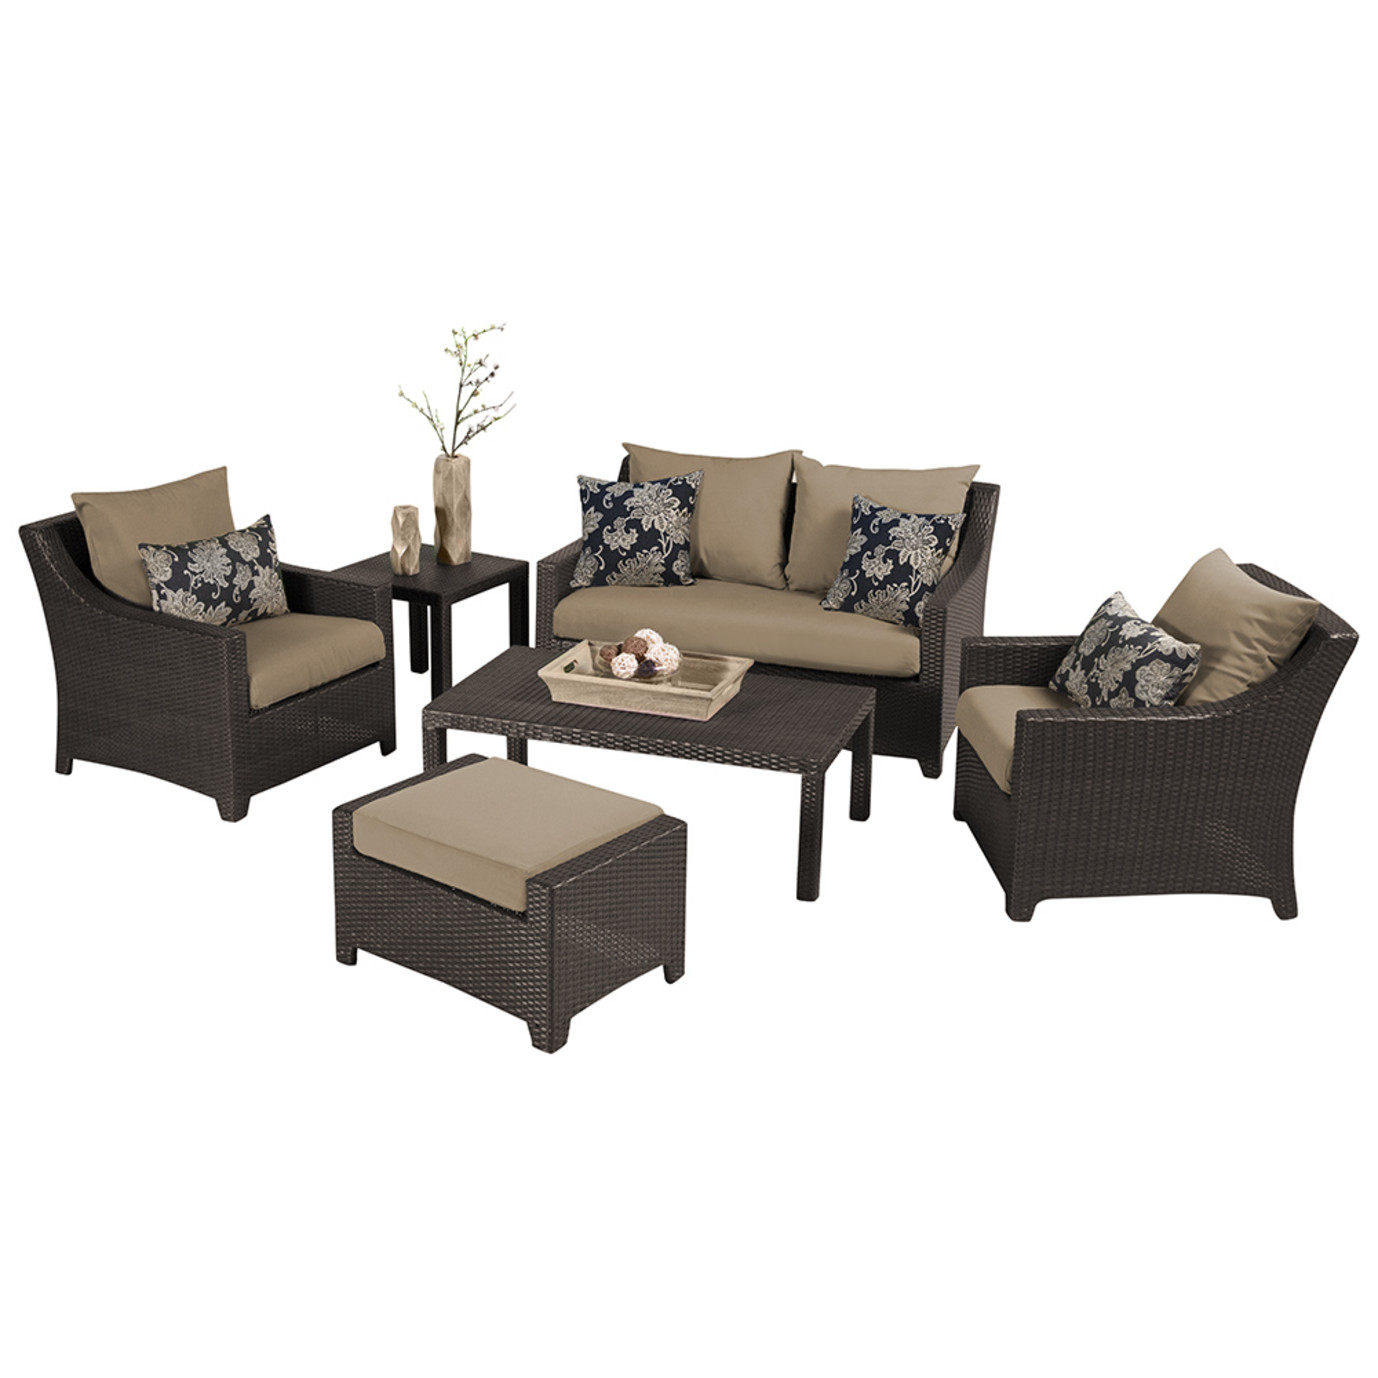 Deco 6pc Love and Club Seating Set - Delano Beige